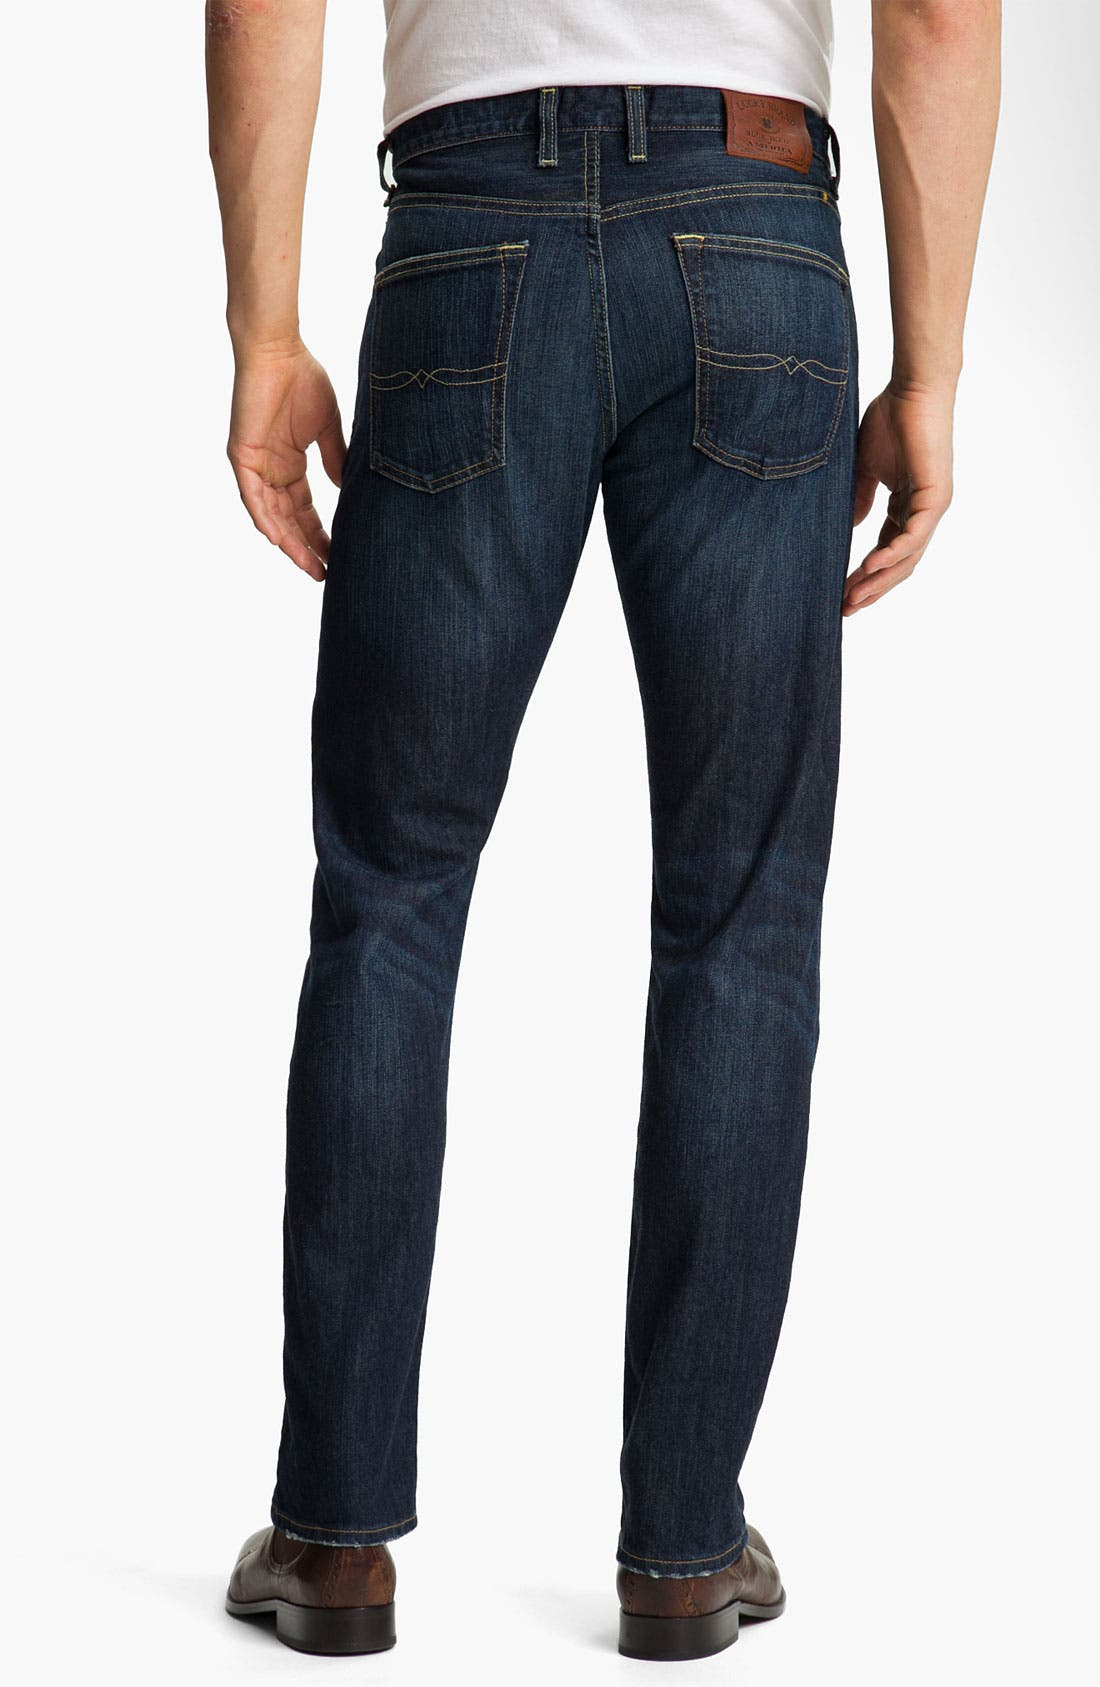 '123 Heritage' Slim Straight Leg Jeans,                             Alternate thumbnail 3, color,                             460